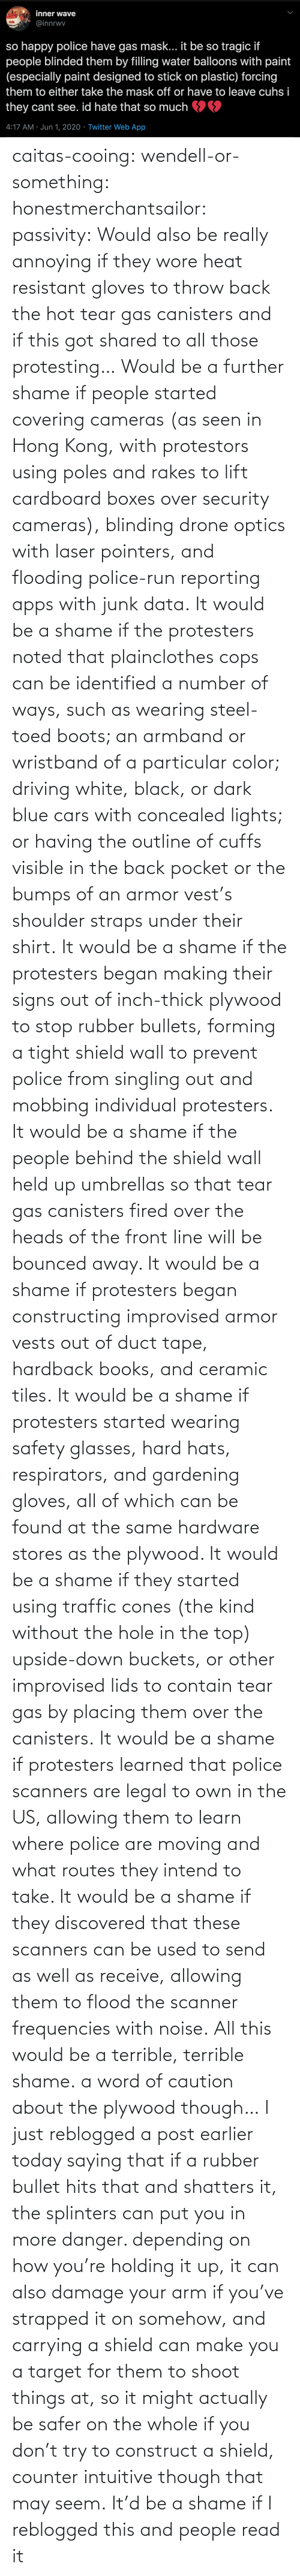 security: caitas-cooing:  wendell-or-something: honestmerchantsailor:  passivity: Would also be really annoying if they wore heat resistant gloves to throw back the hot tear gas canisters and if this got shared to all those protesting… Would be a further shame if people started covering cameras (as seen in Hong Kong, with protestors using poles and rakes to lift cardboard boxes over security cameras), blinding drone optics with laser pointers, and flooding police-run reporting apps with junk data. It would be a shame if the protesters noted that plainclothes cops can be identified a number of ways, such as wearing steel-toed boots; an armband or wristband of a particular color; driving white, black, or dark blue cars with concealed lights; or having the outline of cuffs visible in the back pocket or the bumps of an armor vest's shoulder straps under their shirt. It would be a shame if the protesters began making their signs out of inch-thick plywood to stop rubber bullets, forming a tight shield wall to prevent police from singling out and mobbing individual protesters. It would be a shame if the people behind the shield wall held up umbrellas so that tear gas canisters fired over the heads of the front line will be bounced away. It would be a shame if protesters began constructing improvised armor vests out of duct tape, hardback books, and ceramic tiles. It would be a shame if protesters started wearing safety glasses, hard hats, respirators, and gardening gloves, all of which can be found at the same hardware stores as the plywood. It would be a shame if they started using traffic cones (the kind without the hole in the top) upside-down buckets, or other improvised lids to contain tear gas by placing them over the canisters. It would be a shame if protesters learned that police scanners are legal to own in the US, allowing them to learn where police are moving and what routes they intend to take. It would be a shame if they discovered that these scanners can be used to send as well as receive, allowing them to flood the scanner frequencies with noise. All this would be a terrible, terrible shame.    a word of caution about the plywood though… I just reblogged a post earlier today saying that if a rubber bullet hits that and shatters it, the splinters can put you in more danger. depending on how you're holding it up, it can also damage your arm if you've strapped it on somehow, and carrying a shield can make you a target for them to shoot things at, so it might actually be safer on the whole if you don't try to construct a shield, counter intuitive though that may seem.    It'd be a shame if I reblogged this and people read it